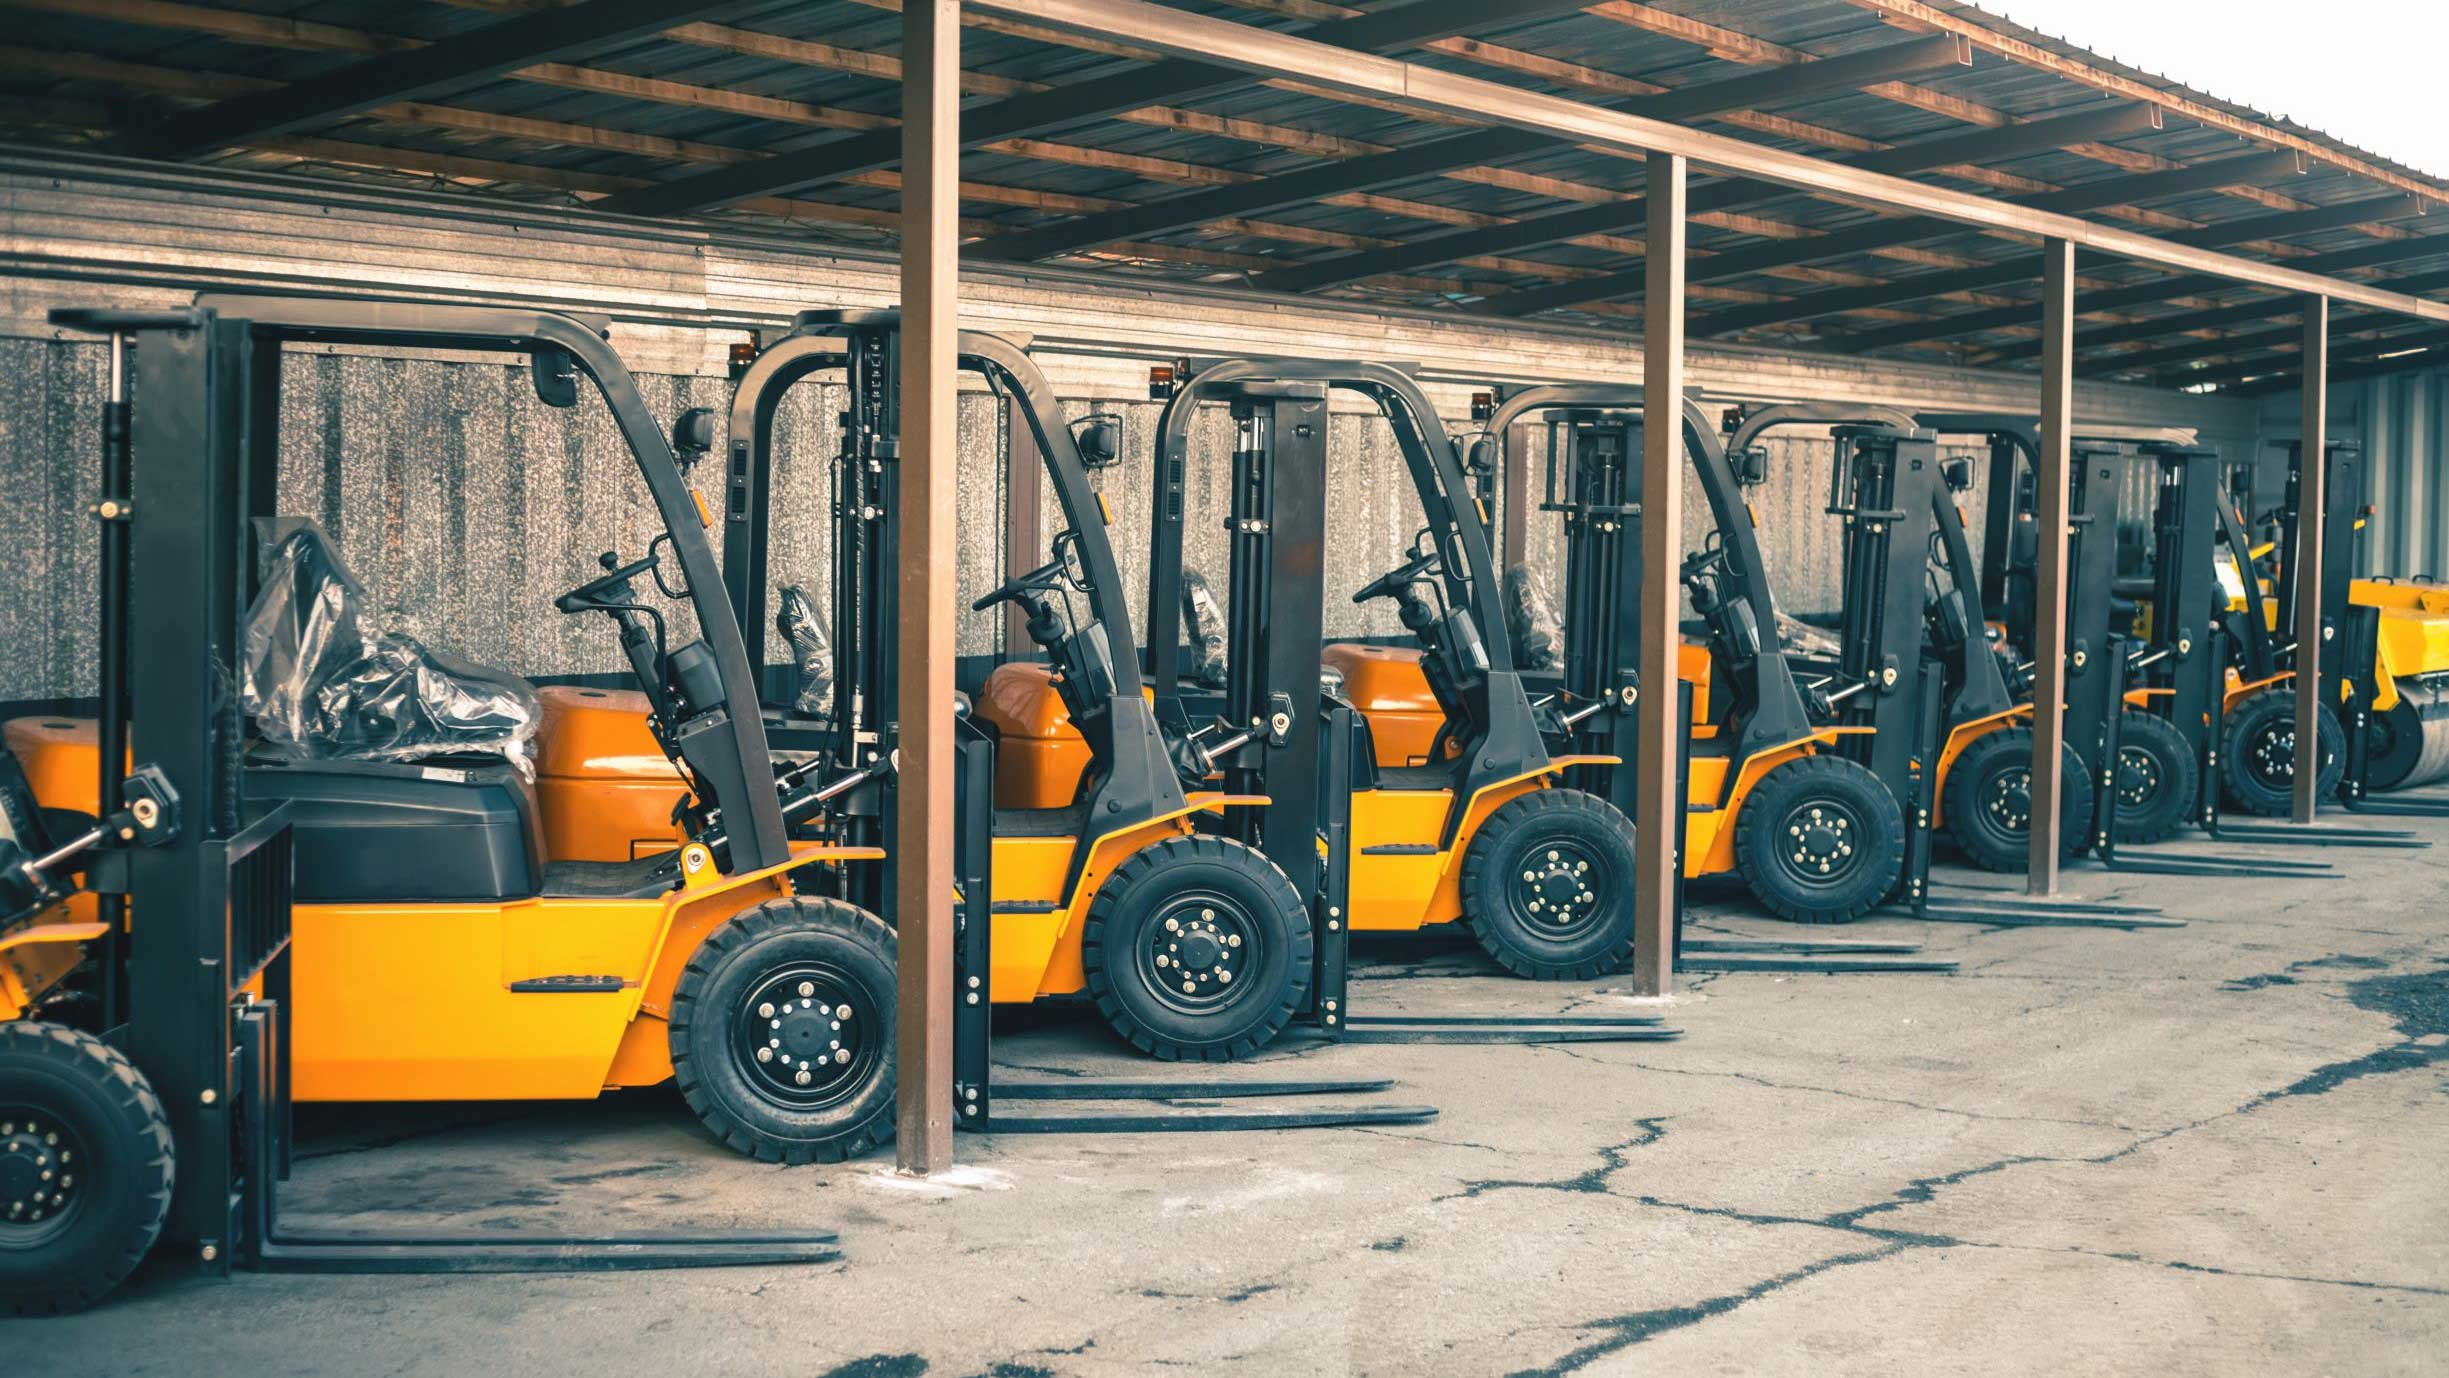 Should I Buy or Rent a Forklift? Here's How to Decide